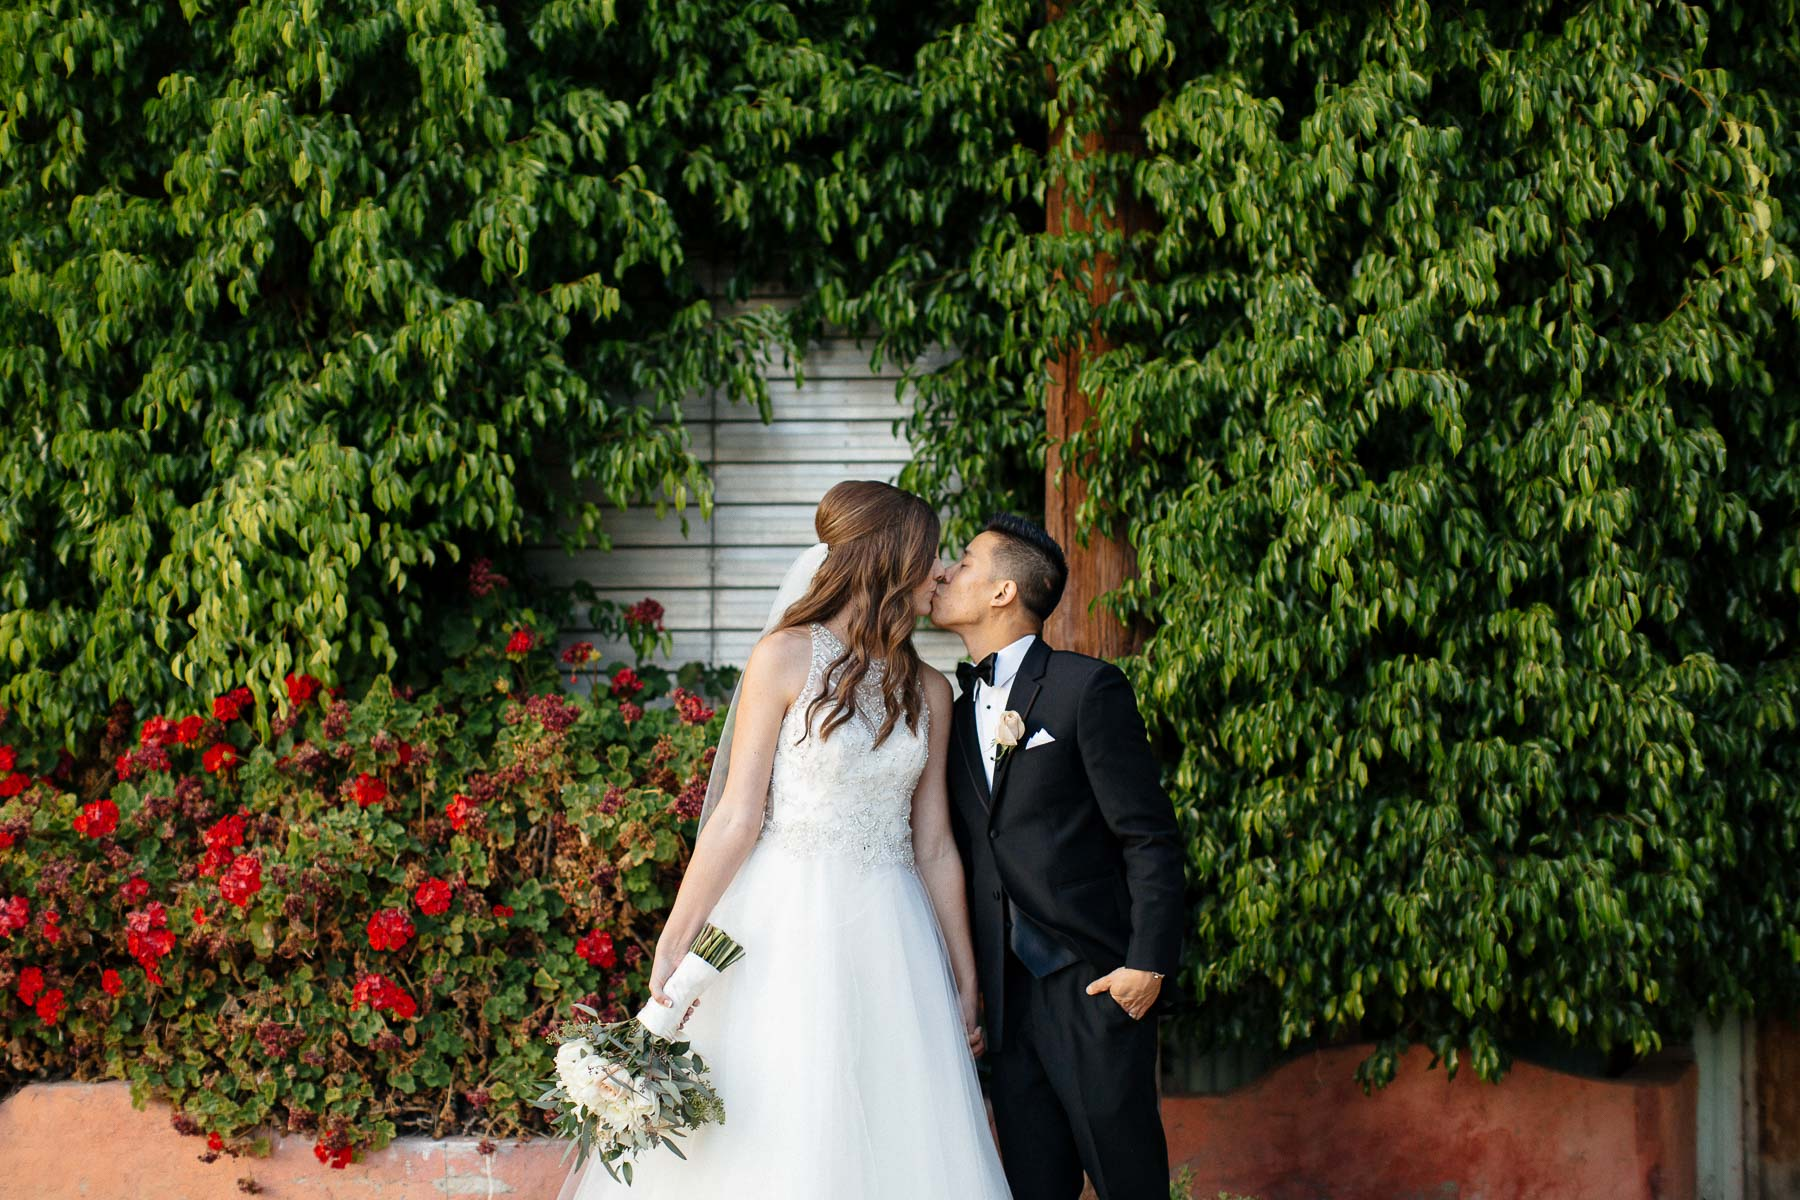 161112-Luxium-Weddings-Arizona-Jon-Madison-Boojum-Tree-First-Look-036.jpg